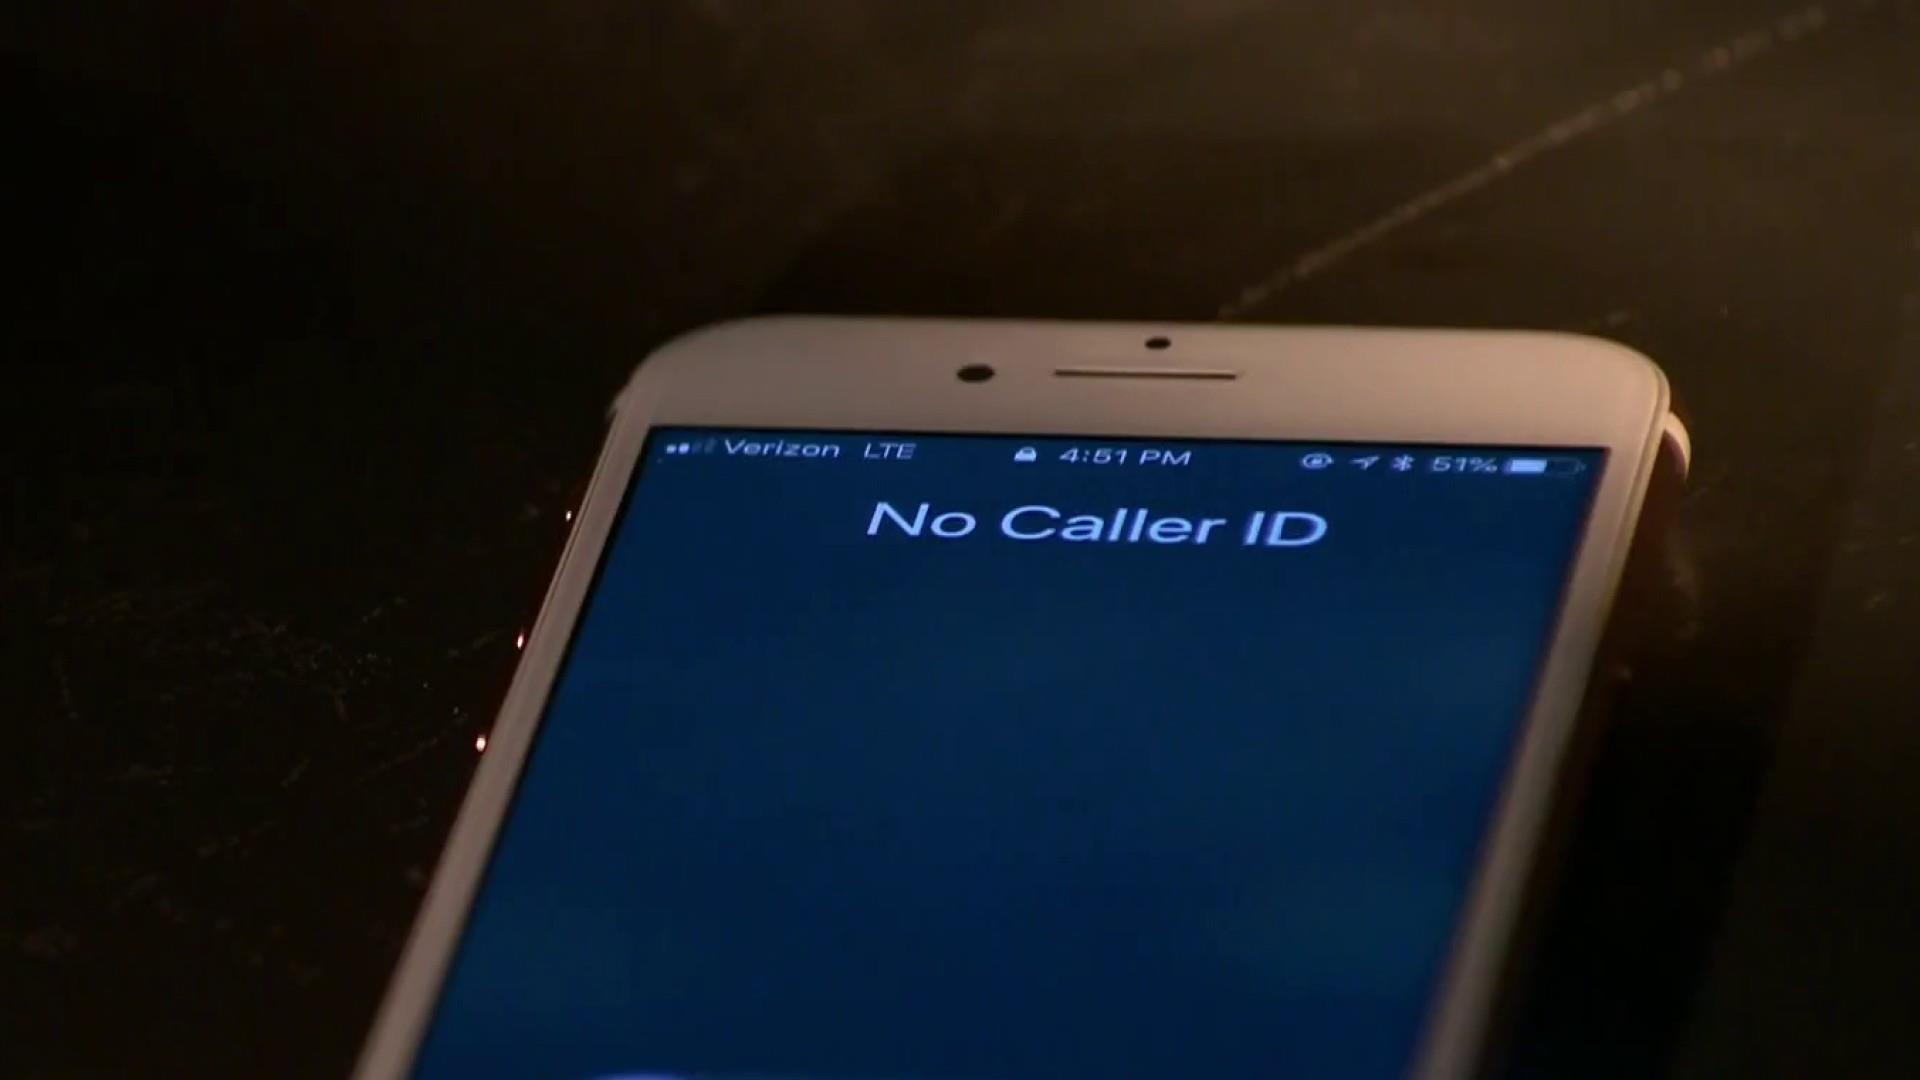 State attorneys general join fight against robocalls